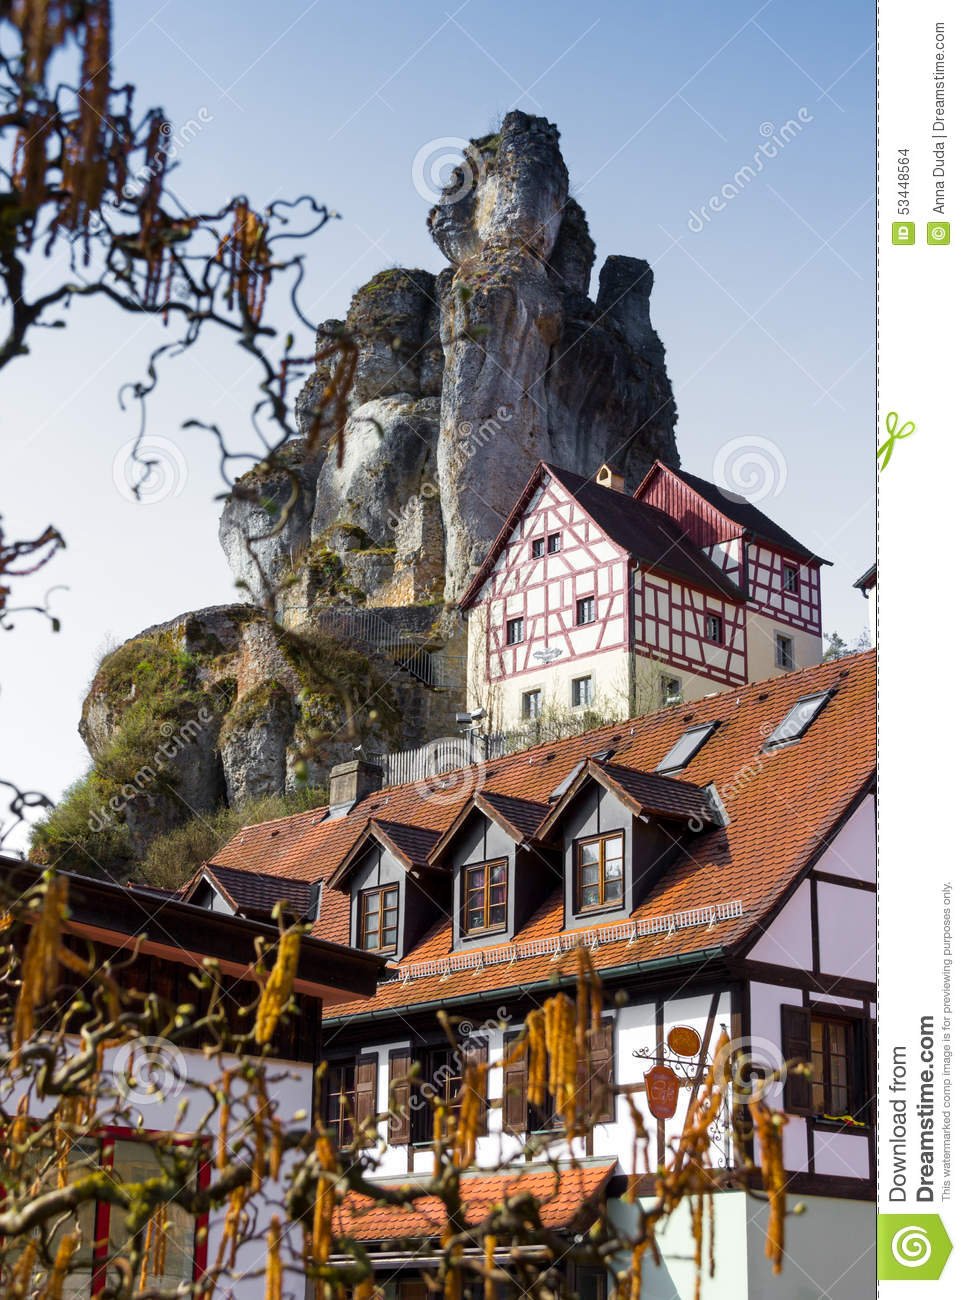 Rock Formations With Houses Franconian Switzerland Germany Stock.